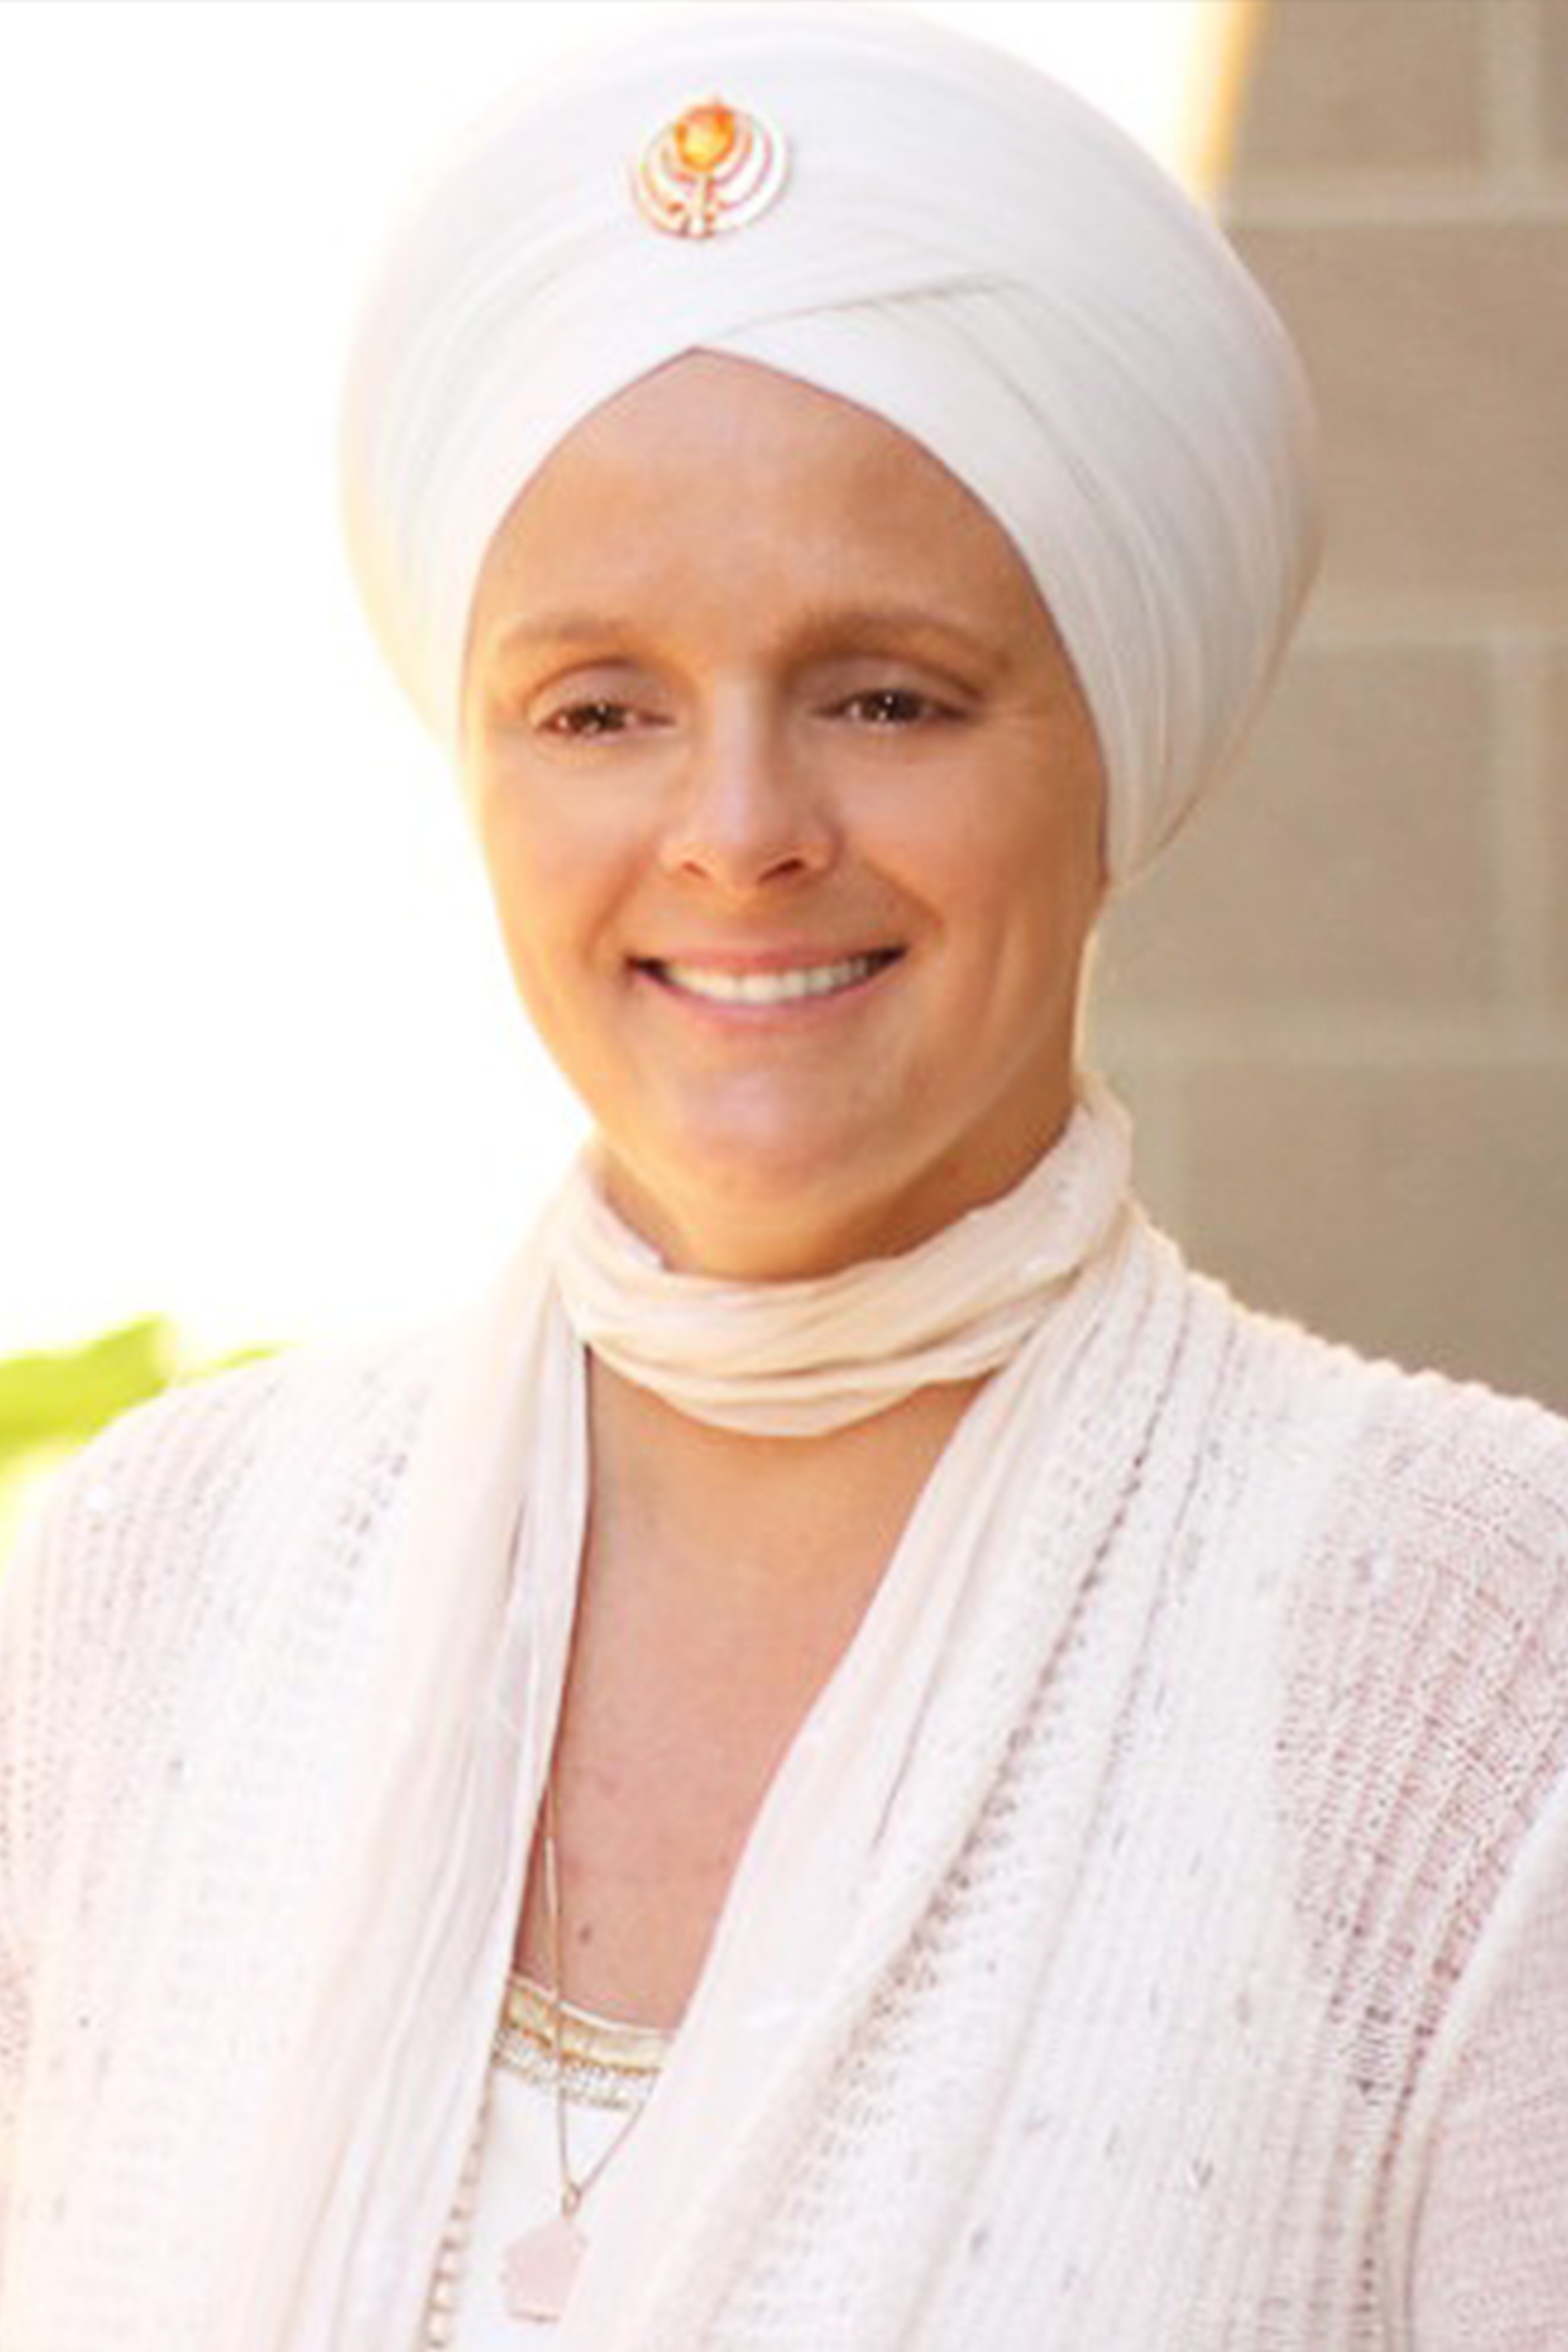 Devinder Kaur - Attend a Kundalini class with Devinder, and you'll experience why students have studied and practiced with her for well over 15 years. Her strong interpersonal approach to teaching helps people reach their individual goals and empower themselves through yoga.While talented and practiced, Devinder is also a 500 Hour Yoga Alliance Registered Yoga Teacher in the Hatha and Kundalini Yoga traditions. She is Hatha Yoga Teacher Trainer and is a KRI Kundalini Yoga Lead Trainer. With over 25 years of experience as a self-employed business owner and business/IT consultant, she is a much requested presenter on television programs, at local and national Yoga and Women's conferences, and travels extensively as a guest trainer for Kundalini Yoga Teacher Training programs.Devinder is the owner and director of PranaShanti Yoga Centre which is celebrating its 10 year anniversary this year!